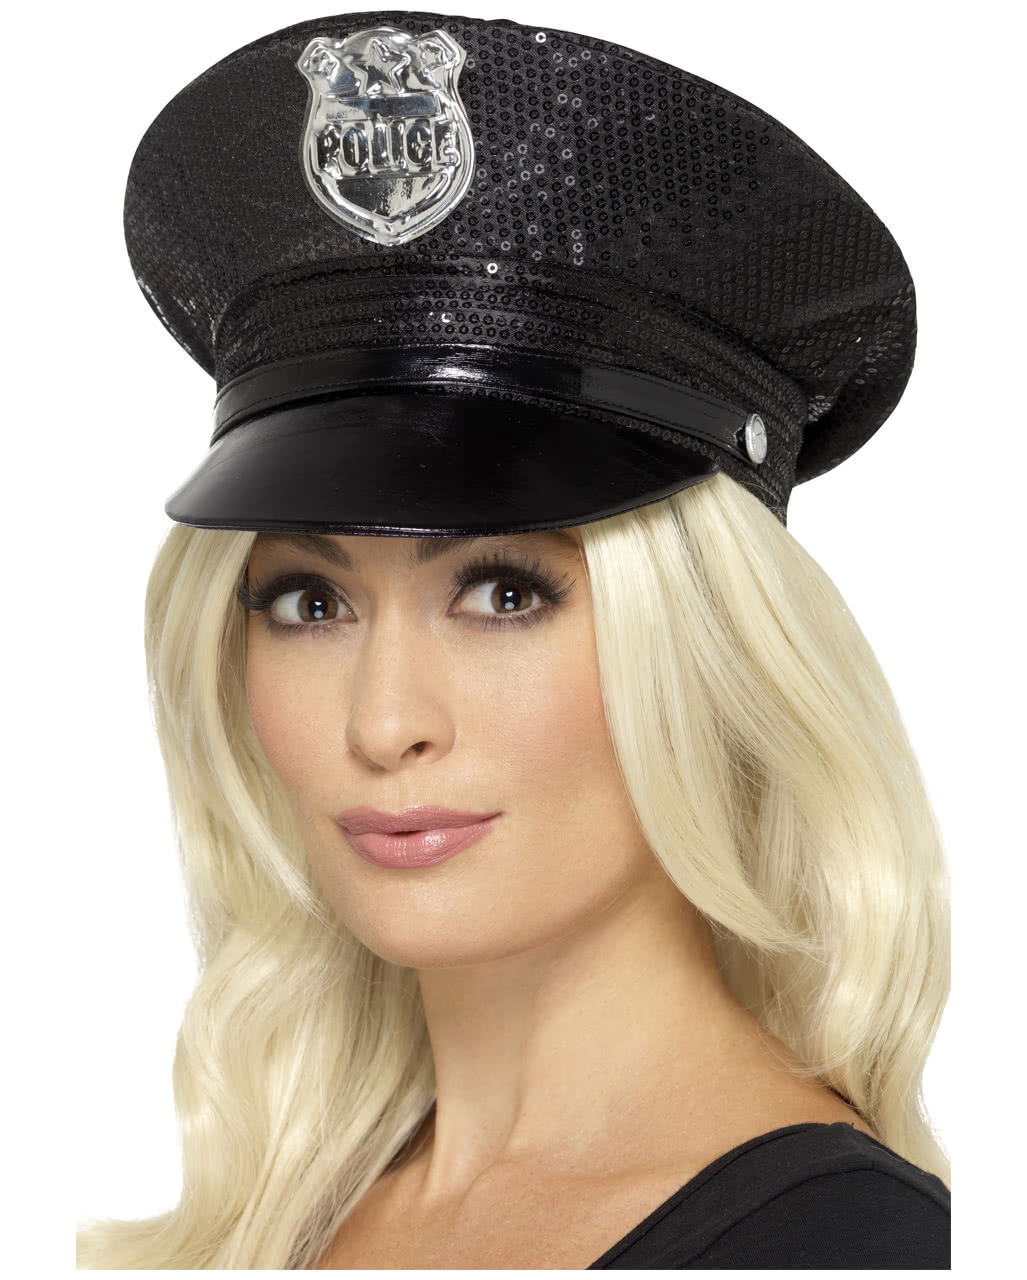 65276a8ebf76f2 Sexy police cap with sequins For carnival | horror-shop.com